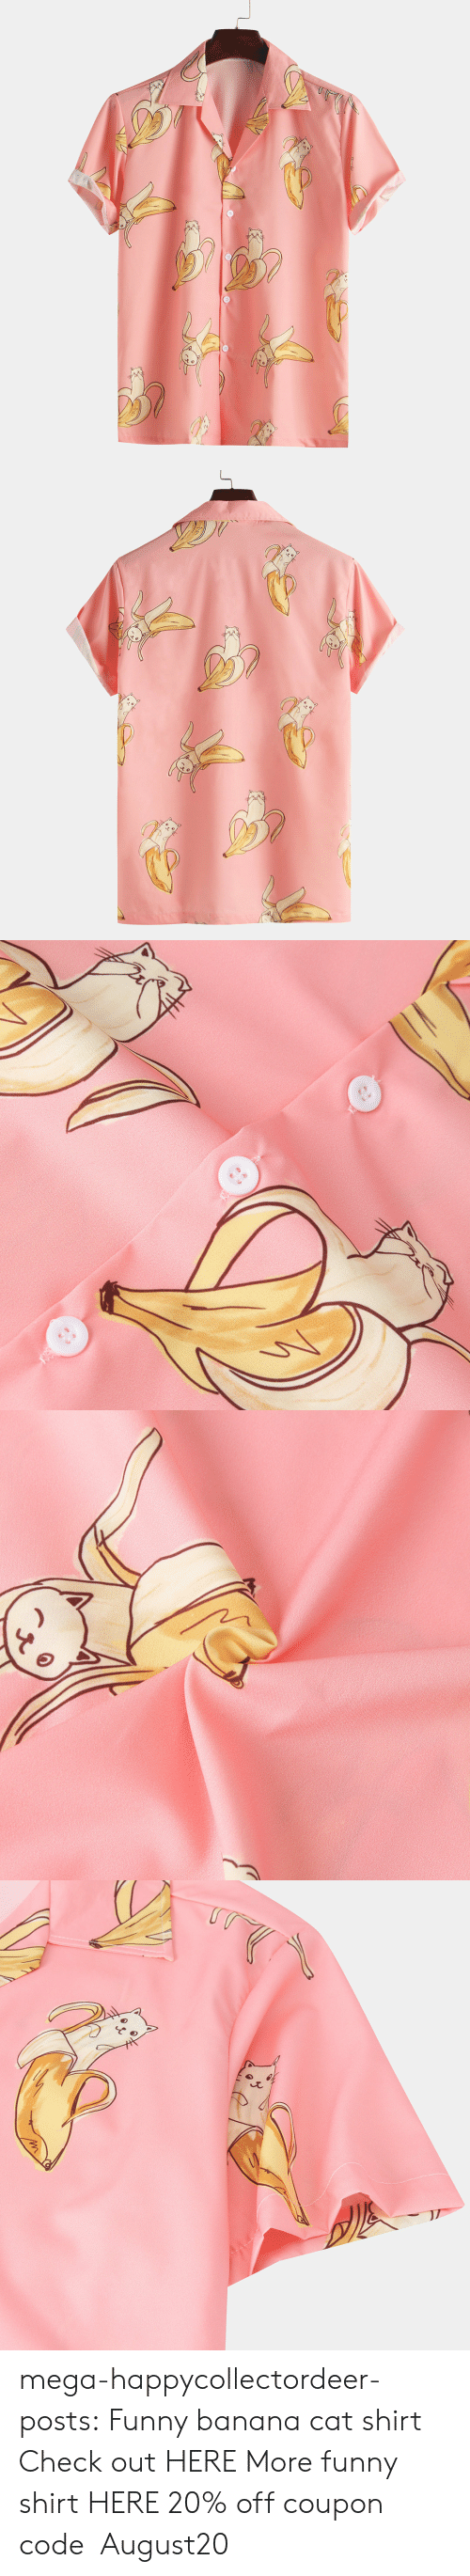 More Funny: mega-happycollectordeer-posts: Funny banana cat shirt Check out HERE More funny shirt HERE 20% off coupon code:August20